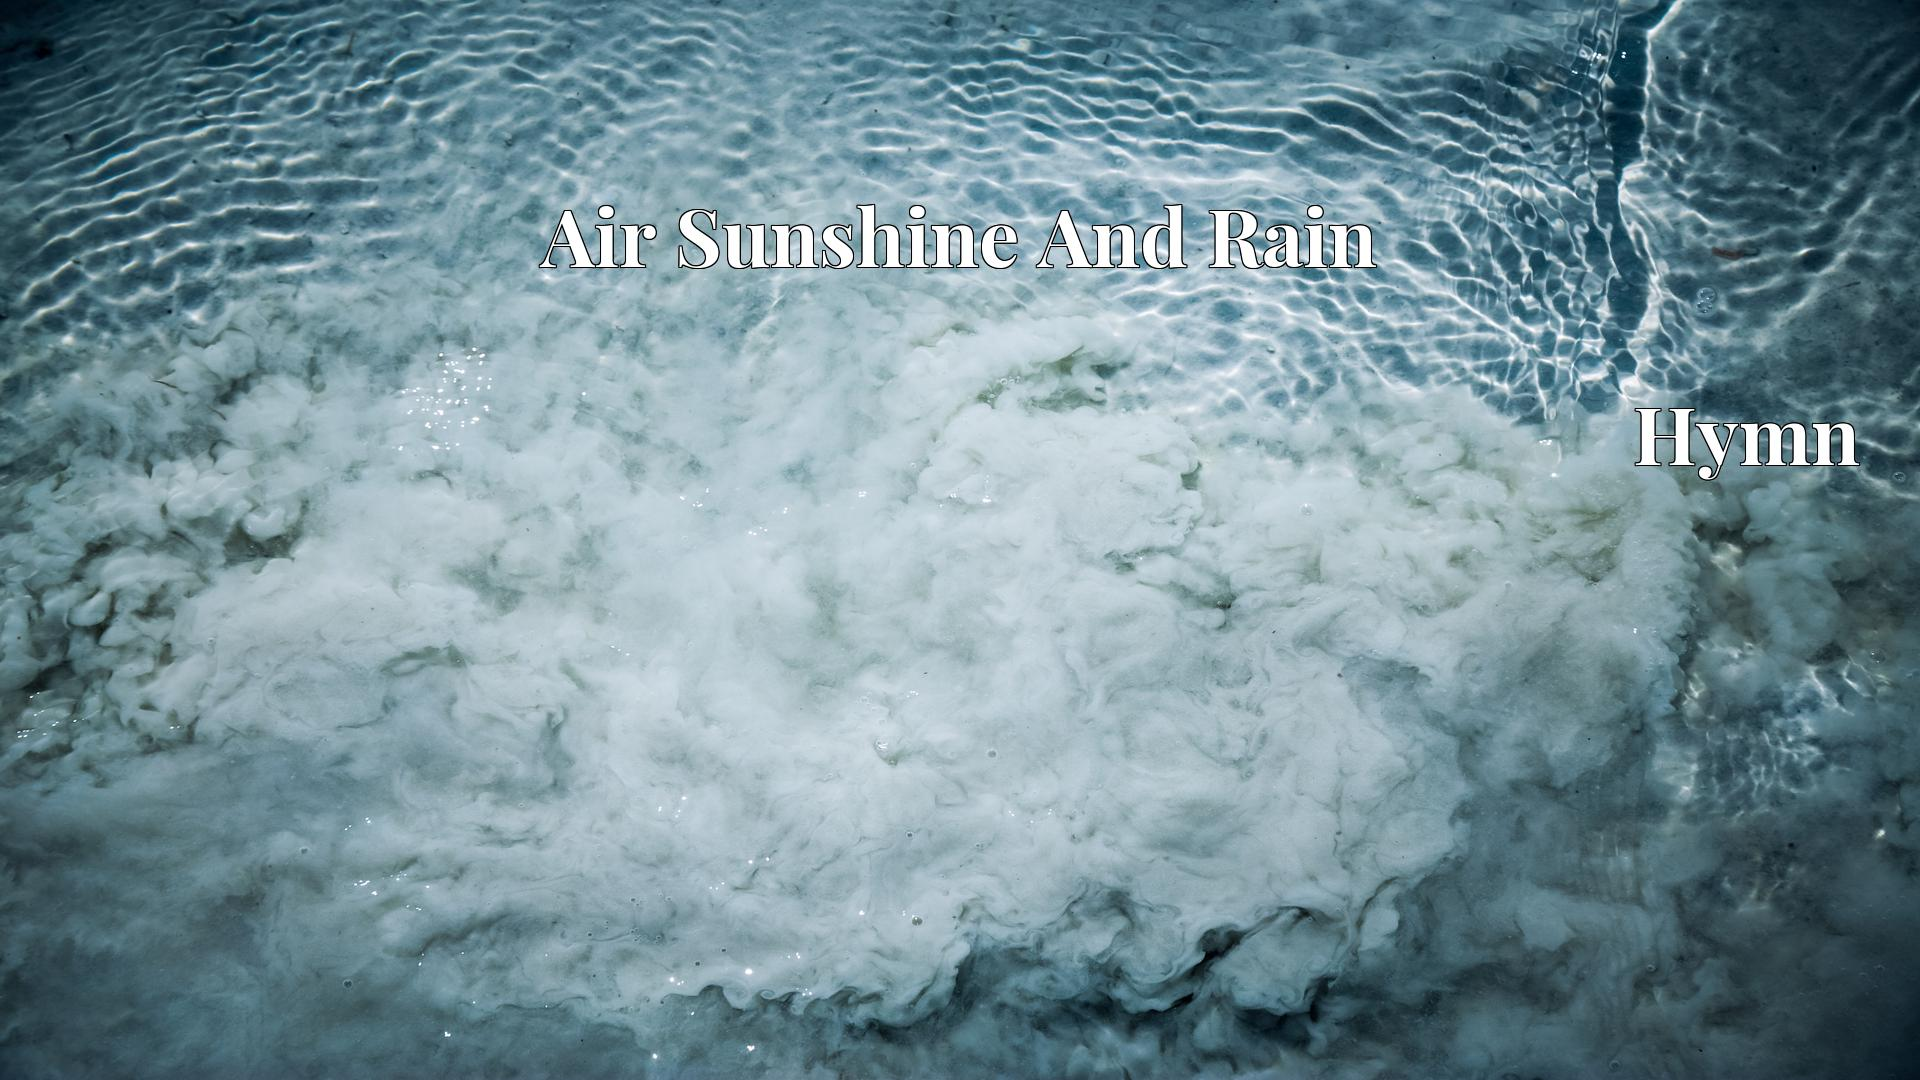 Air Sunshine And Rain - Hymn